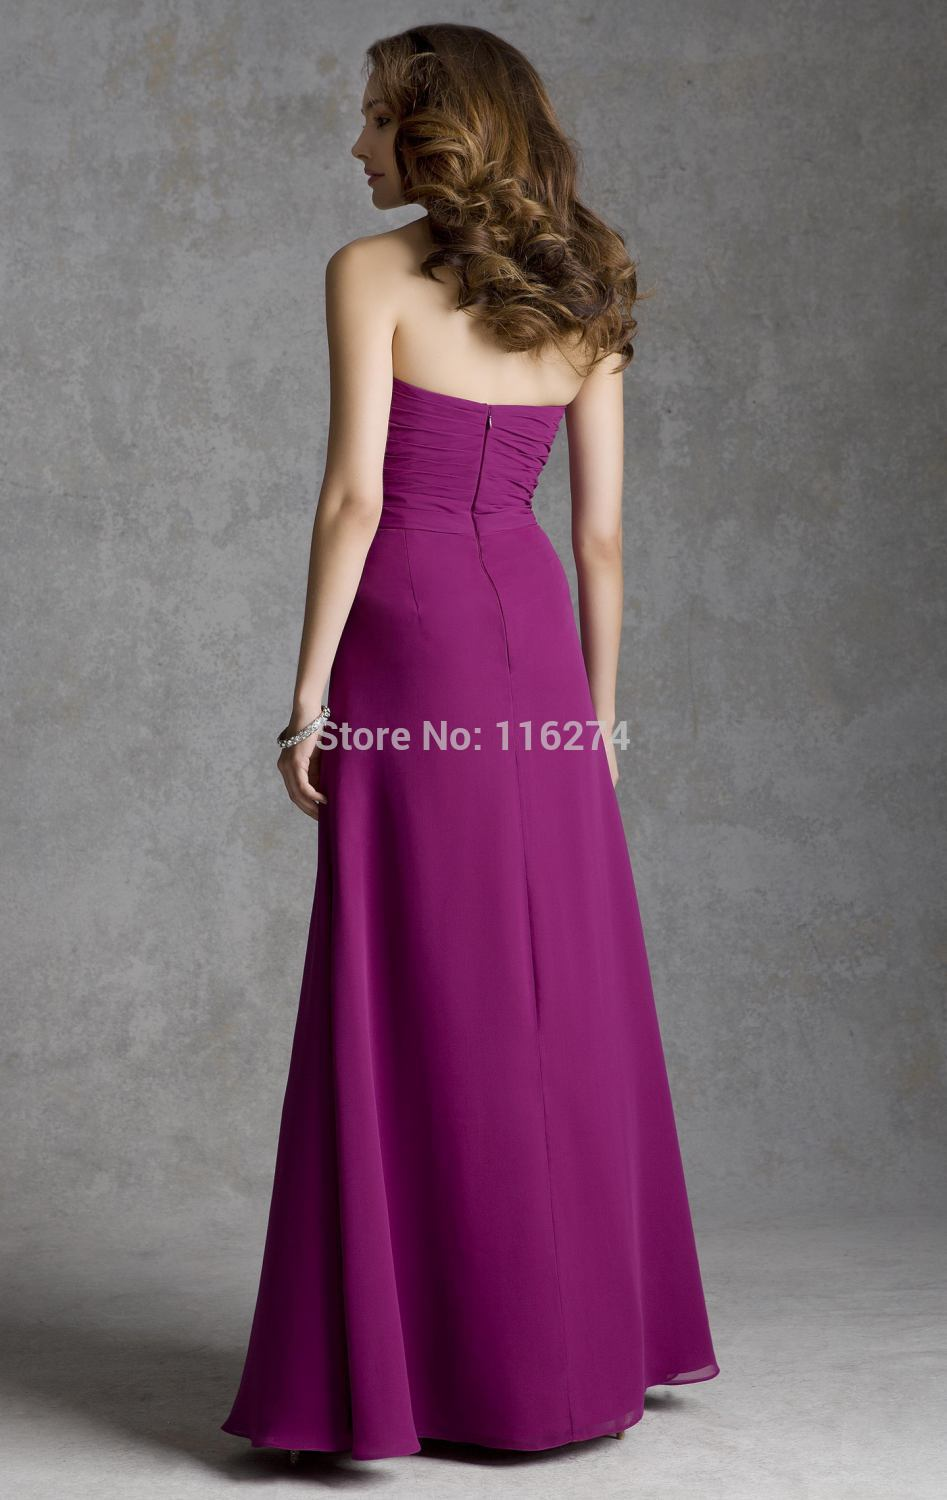 Design Your Own Bridesmaid Dresses Online